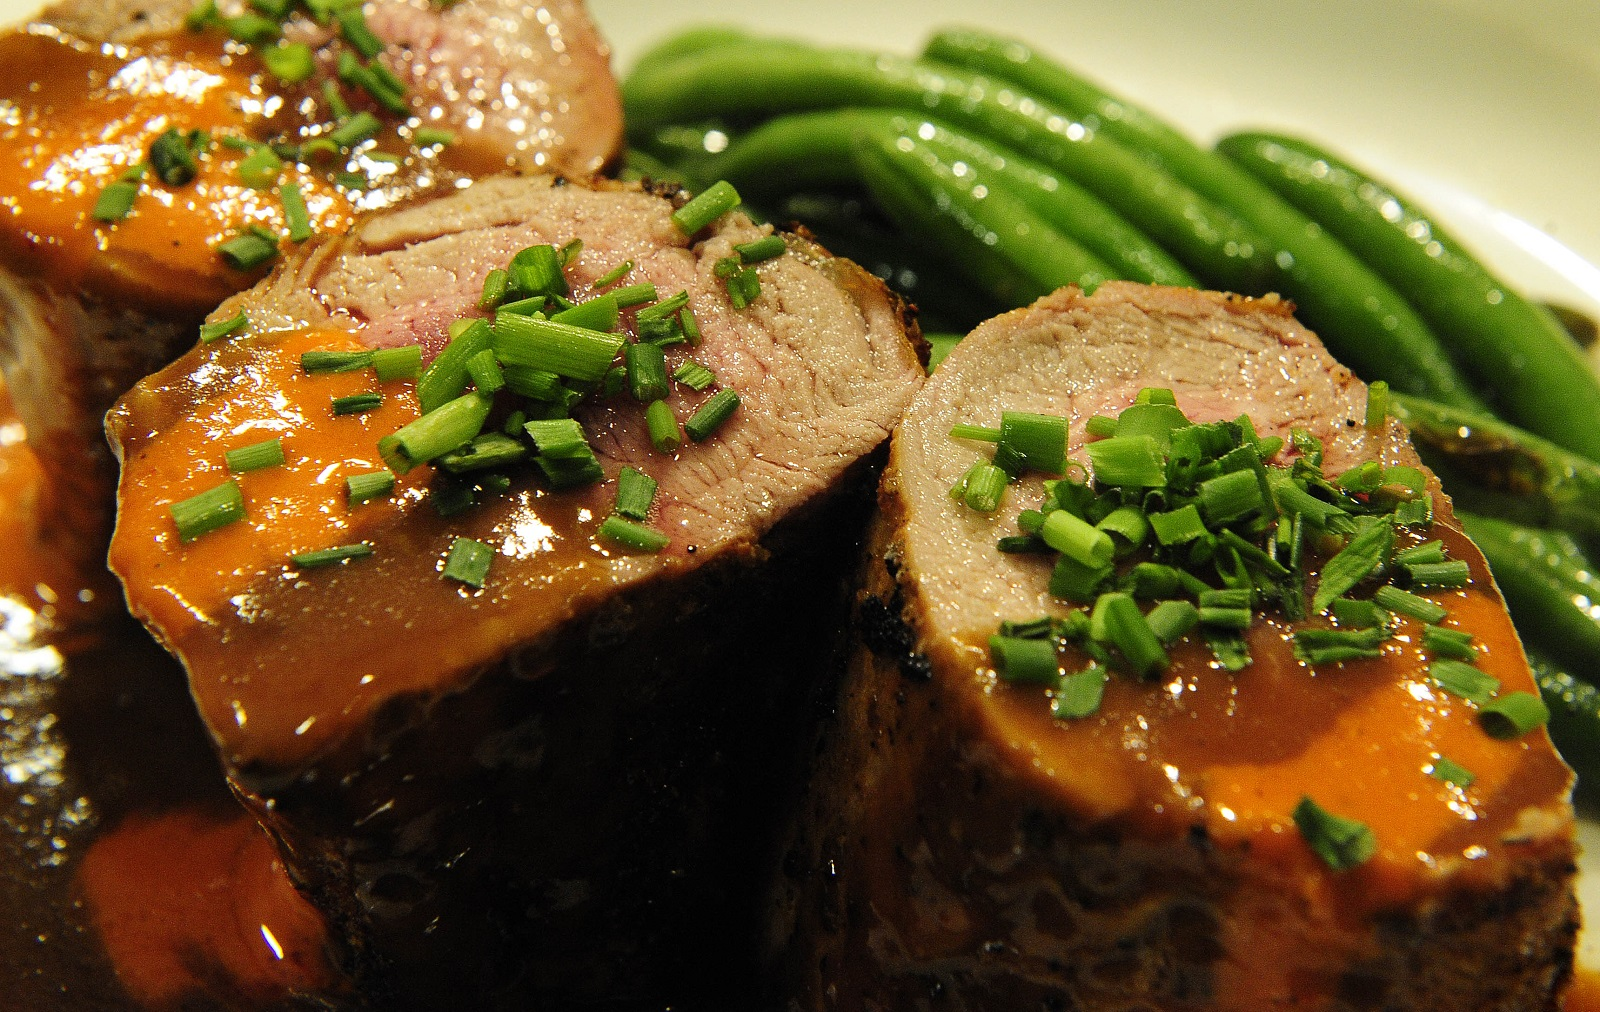 Pork tenderloin at Western Door Steakhouse. (Buffalo News file photo)